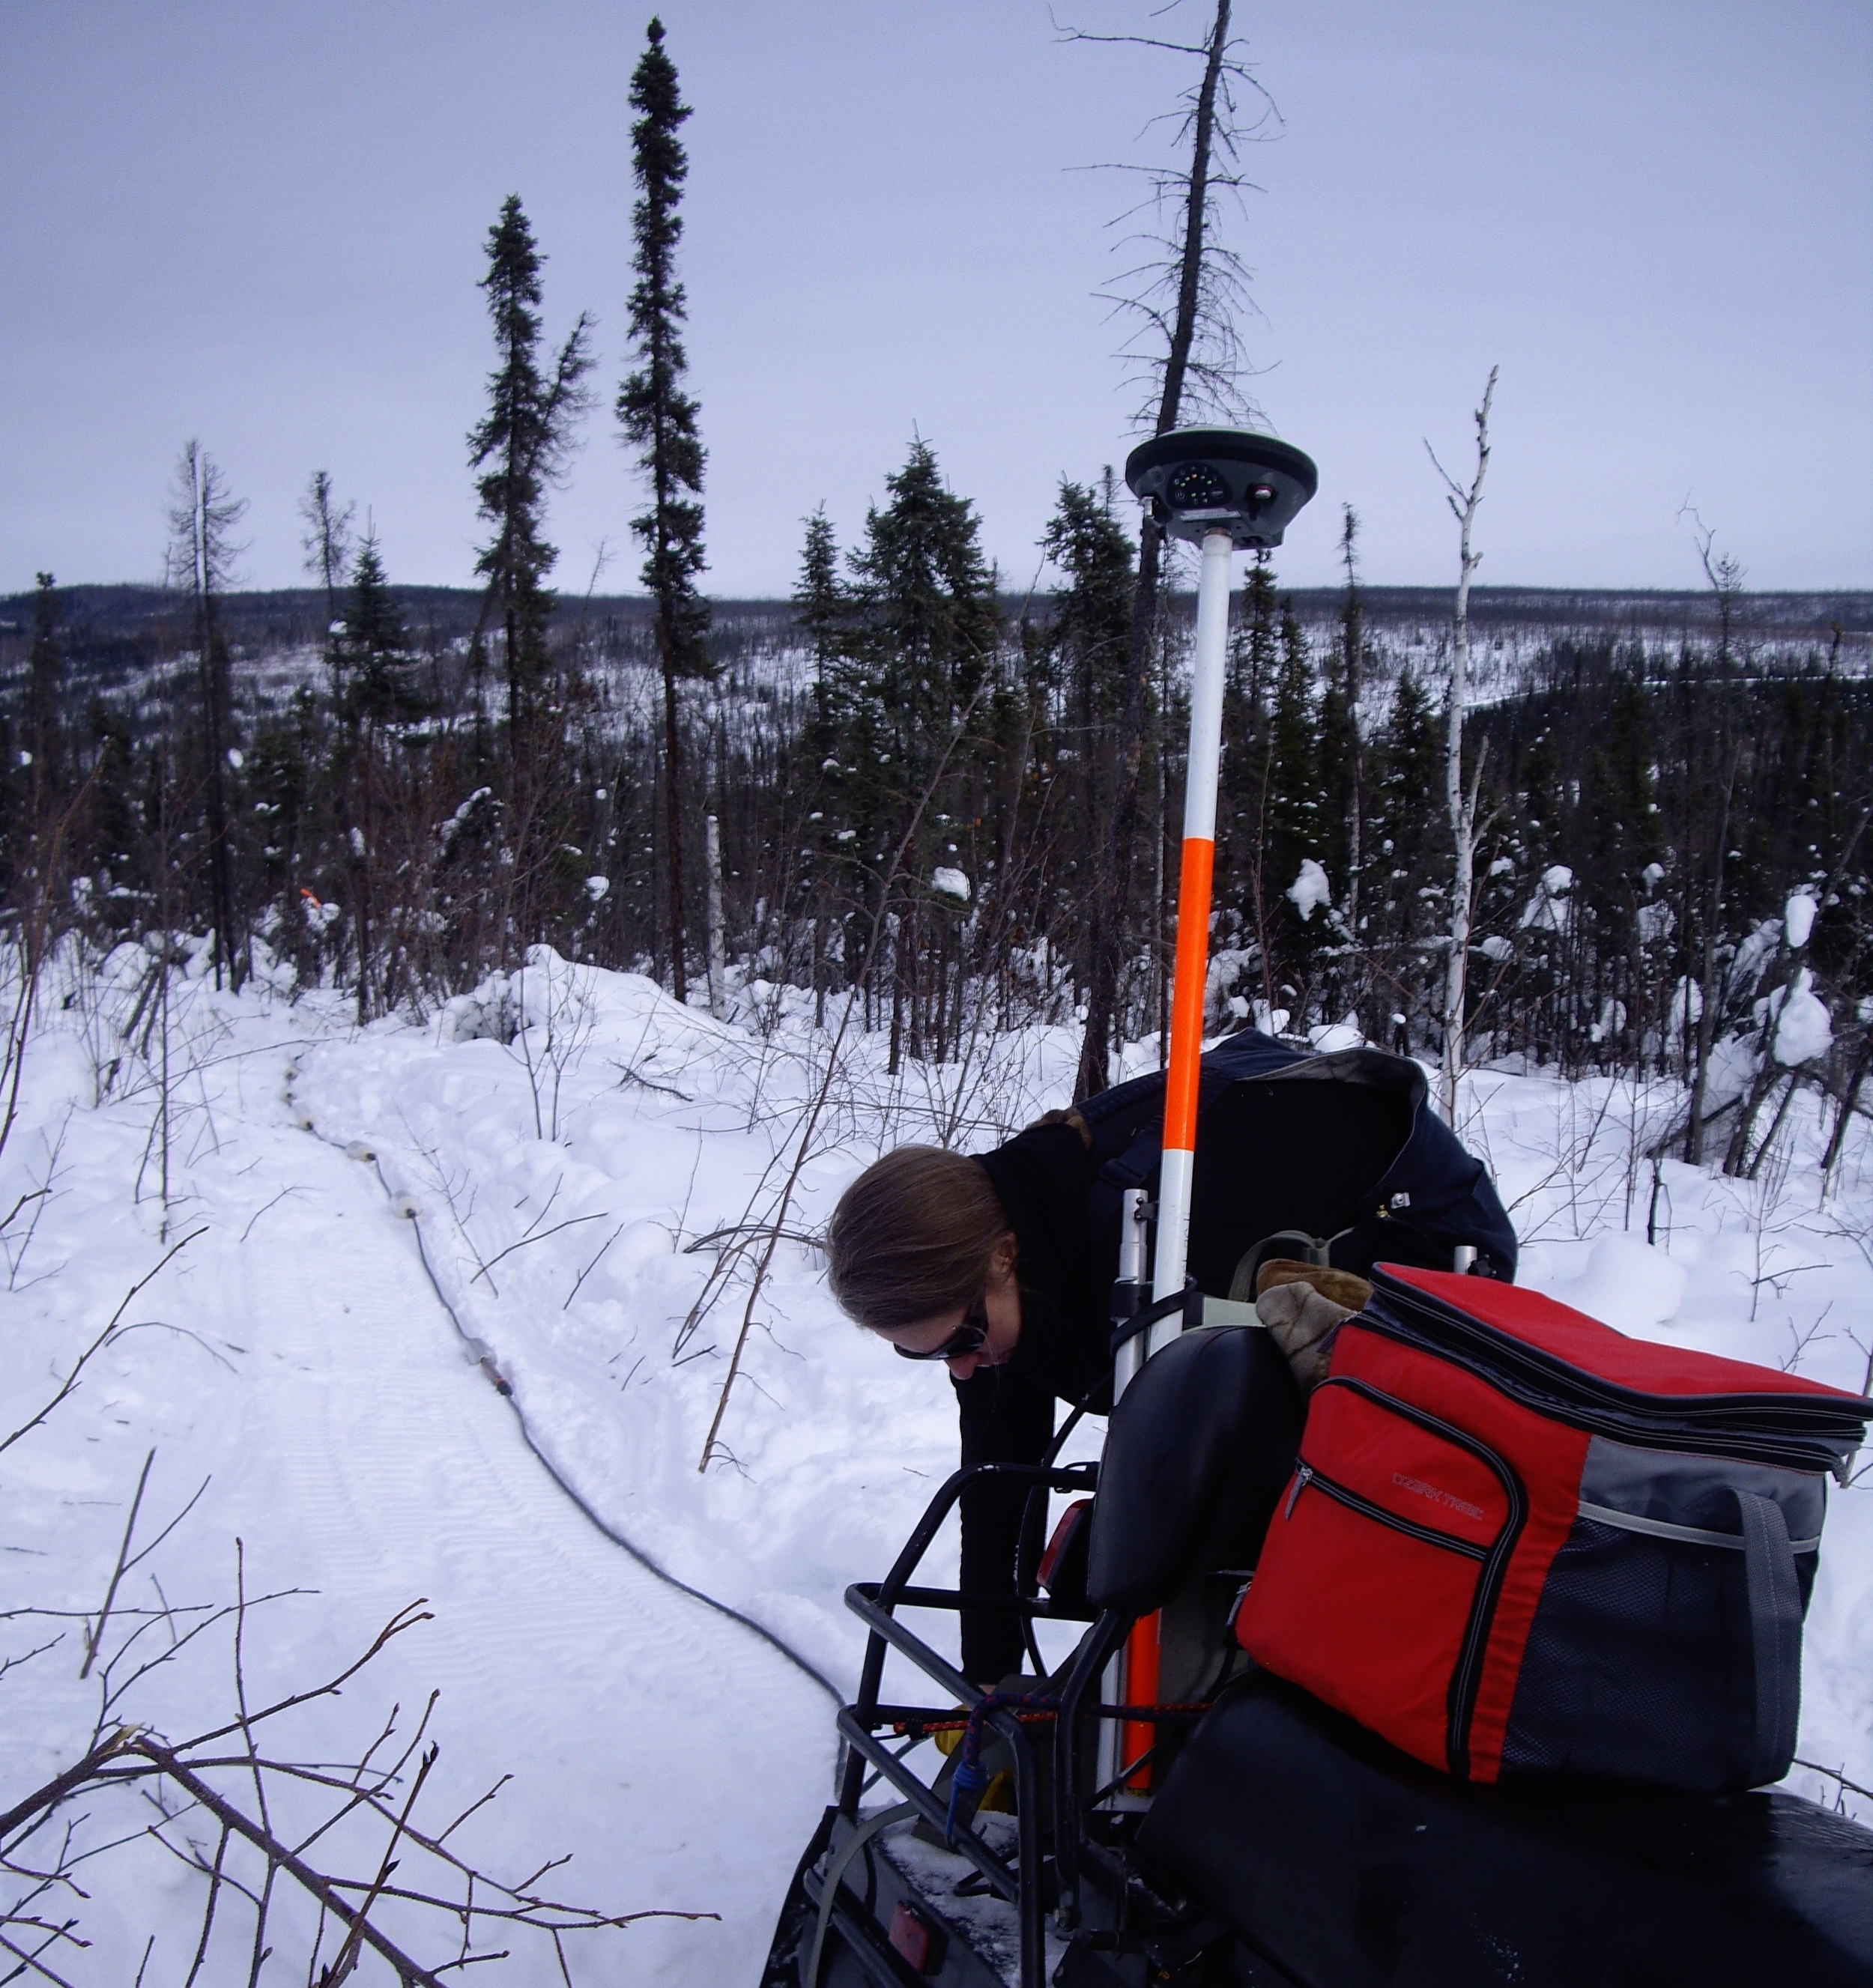 Setting up a GNSS antenna for a resistivity survey along the Dalton highway in Northern Alaska